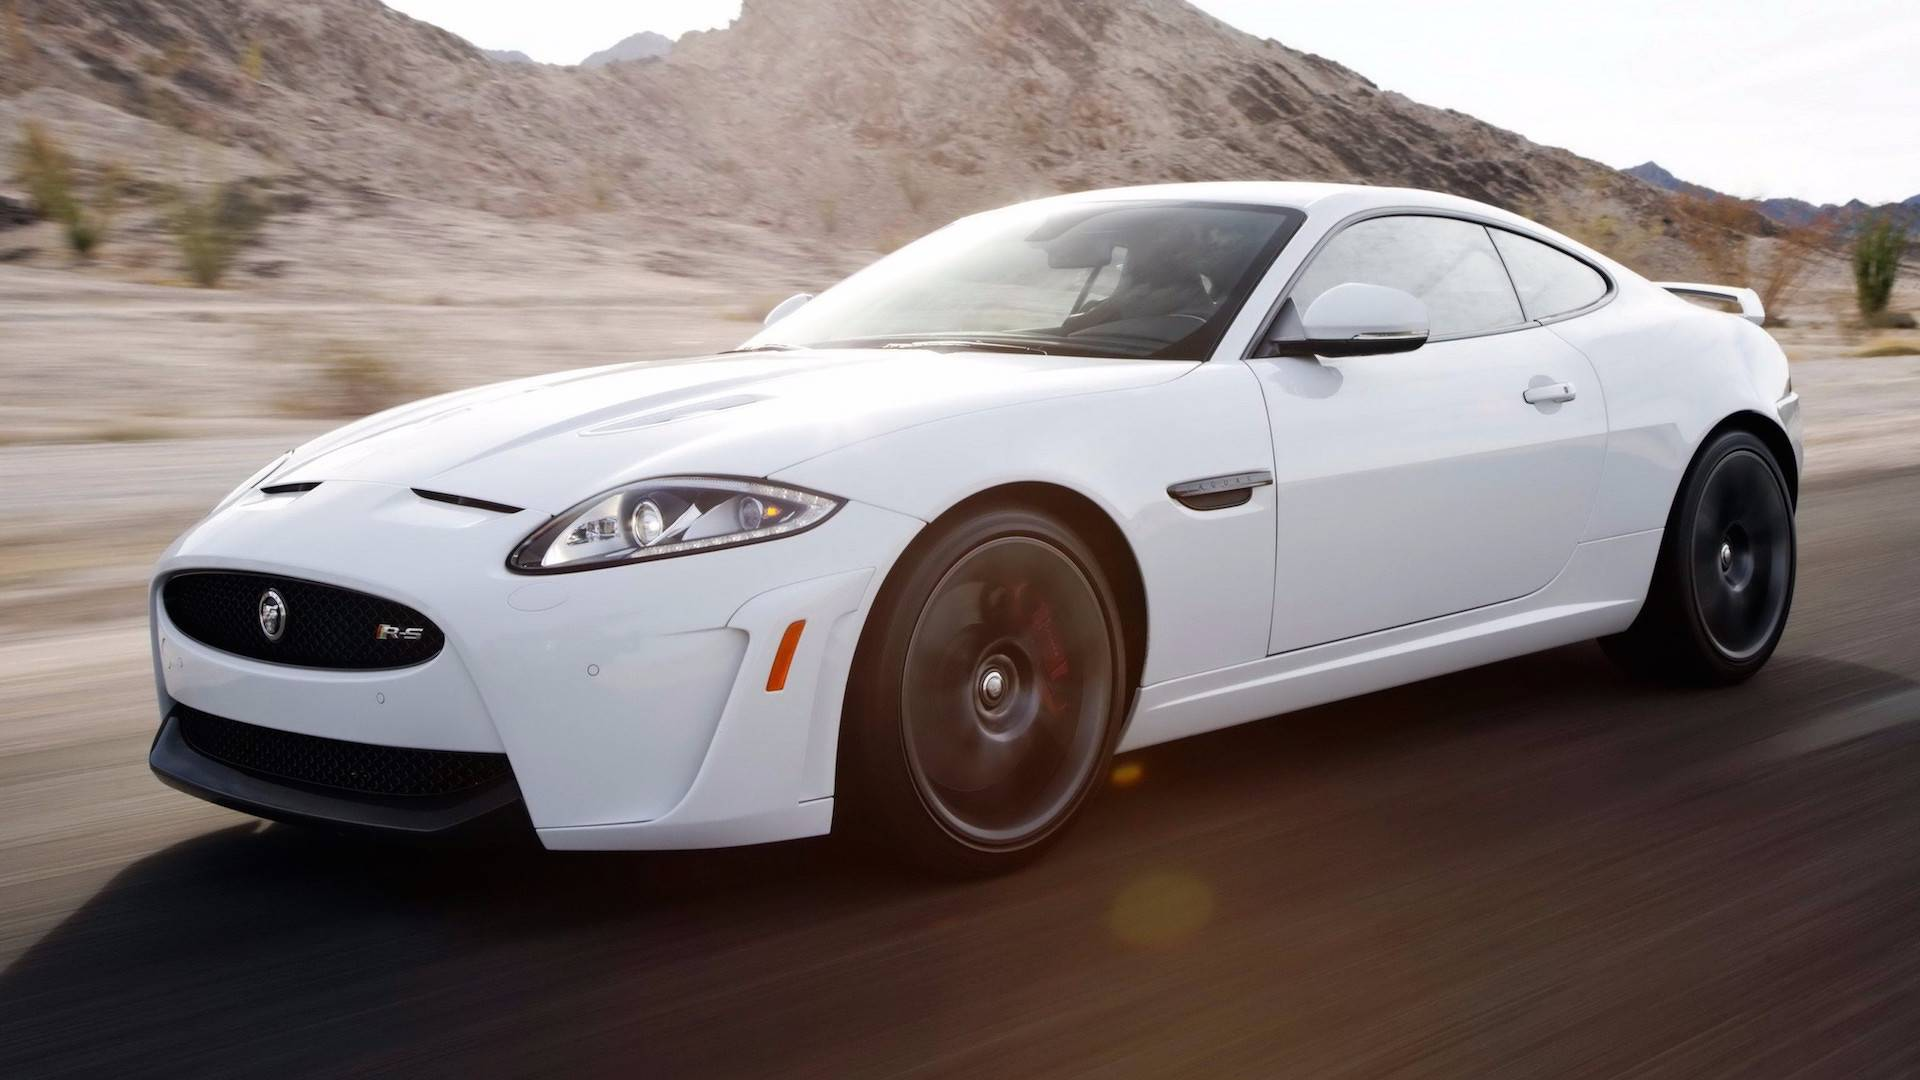 xkr oyster jaguar xk stock near sale series pin s for gt